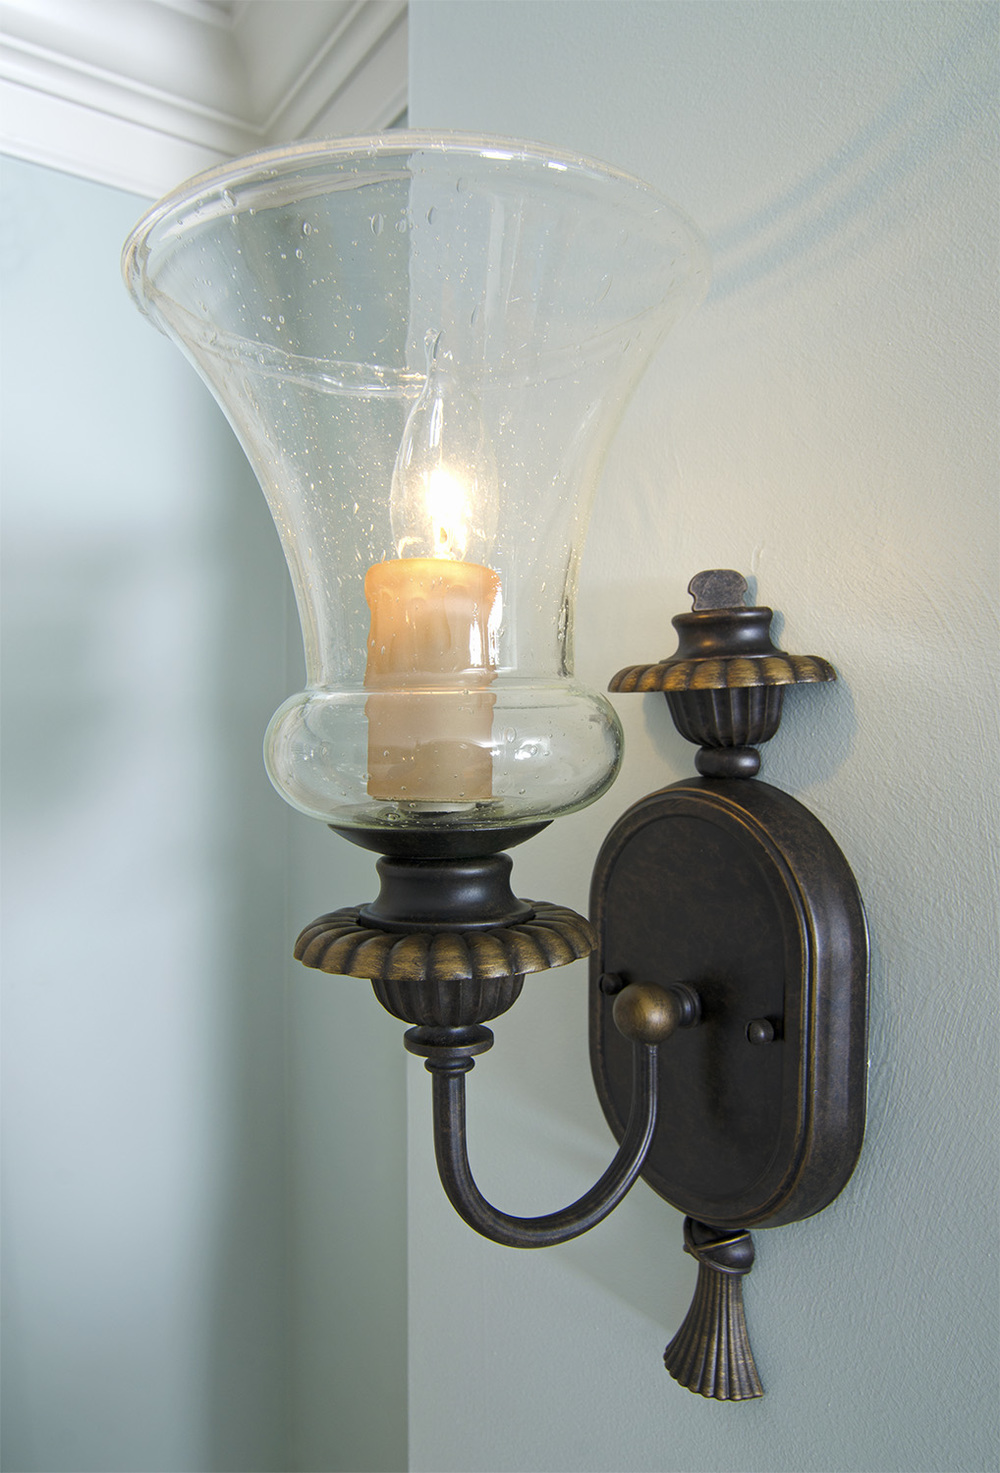 Dining Room Sconce - After